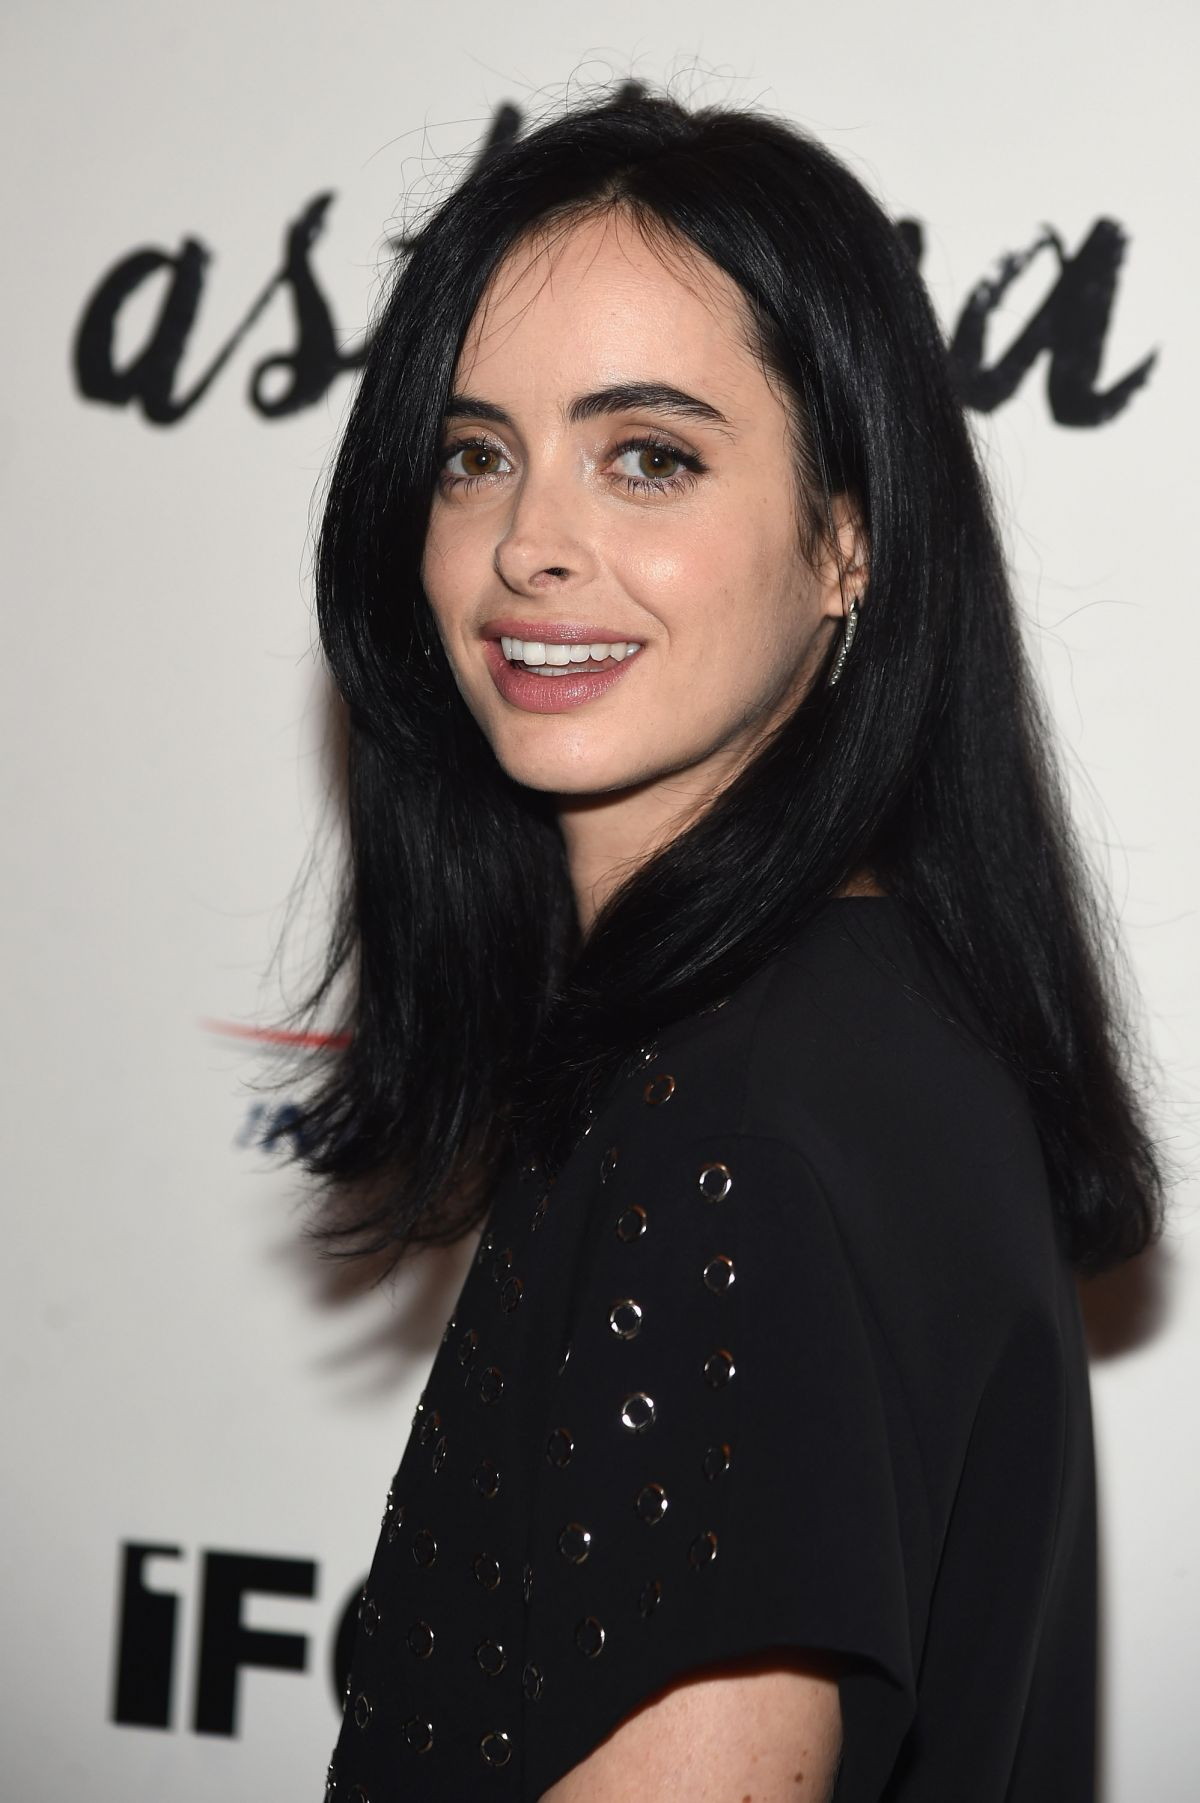 Krysten Ritter At Ashtma Screening In New York 10  08  2015